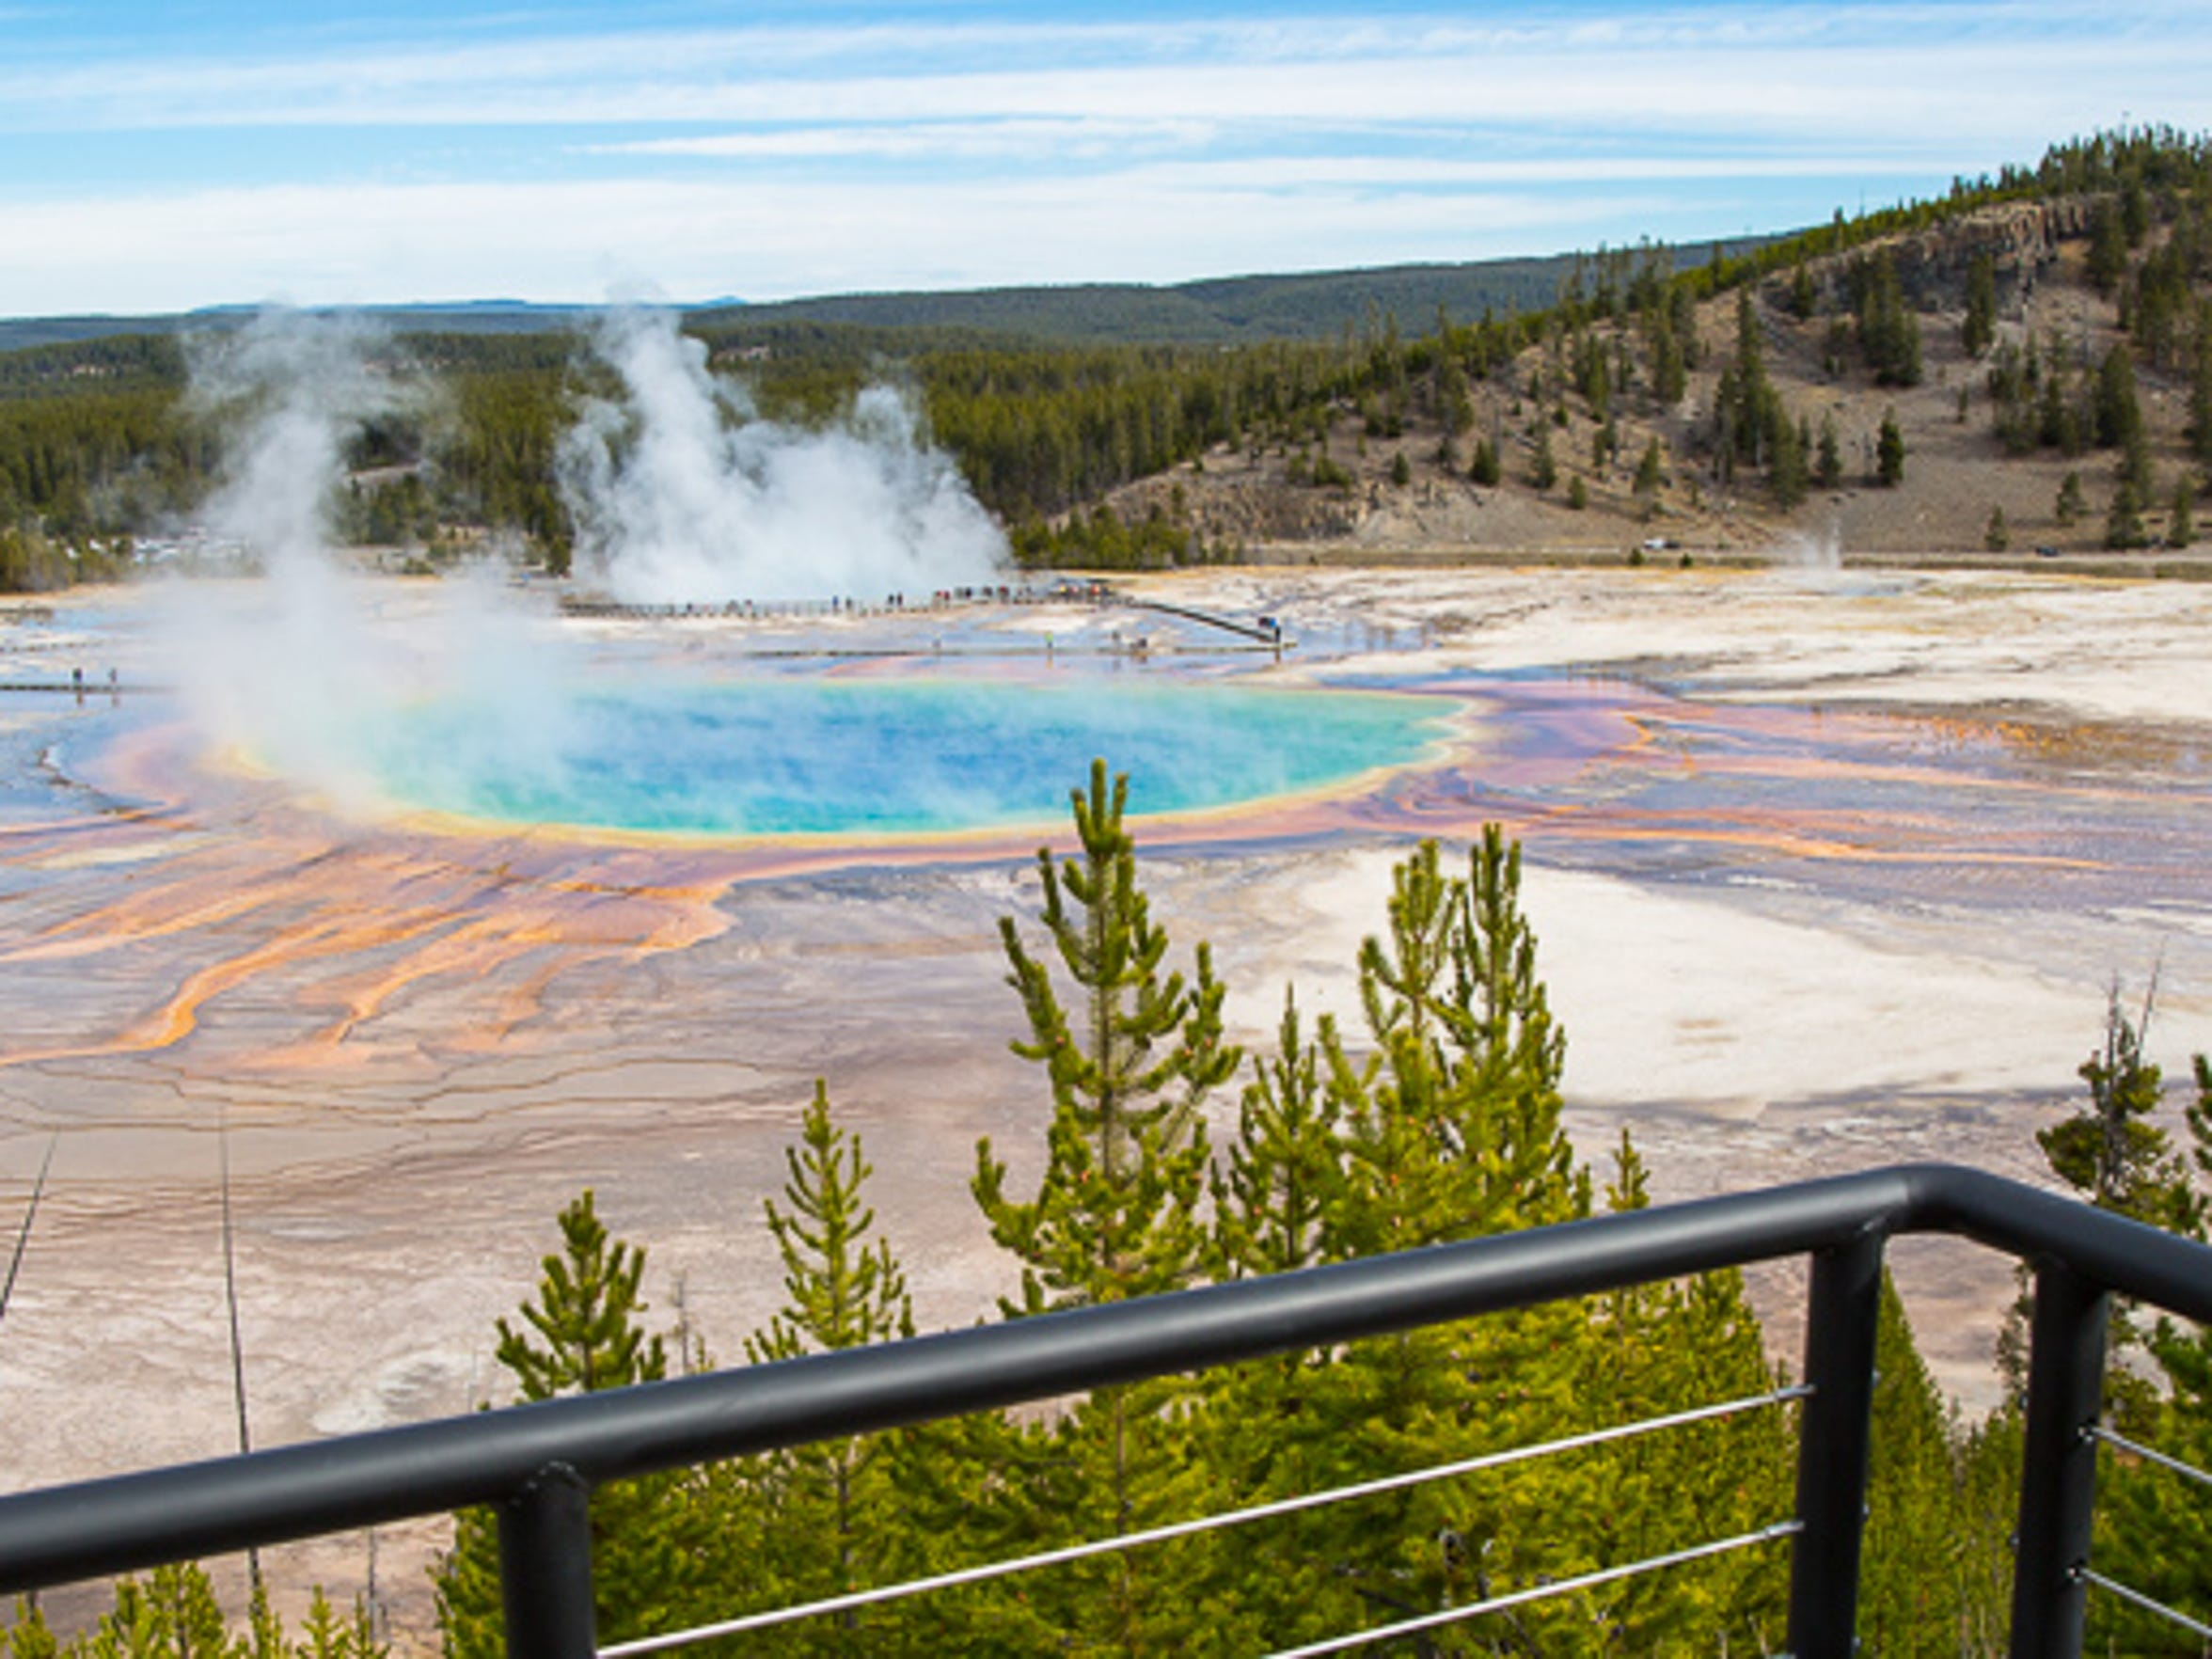 The new observation deck overlooking Grand Prismatic